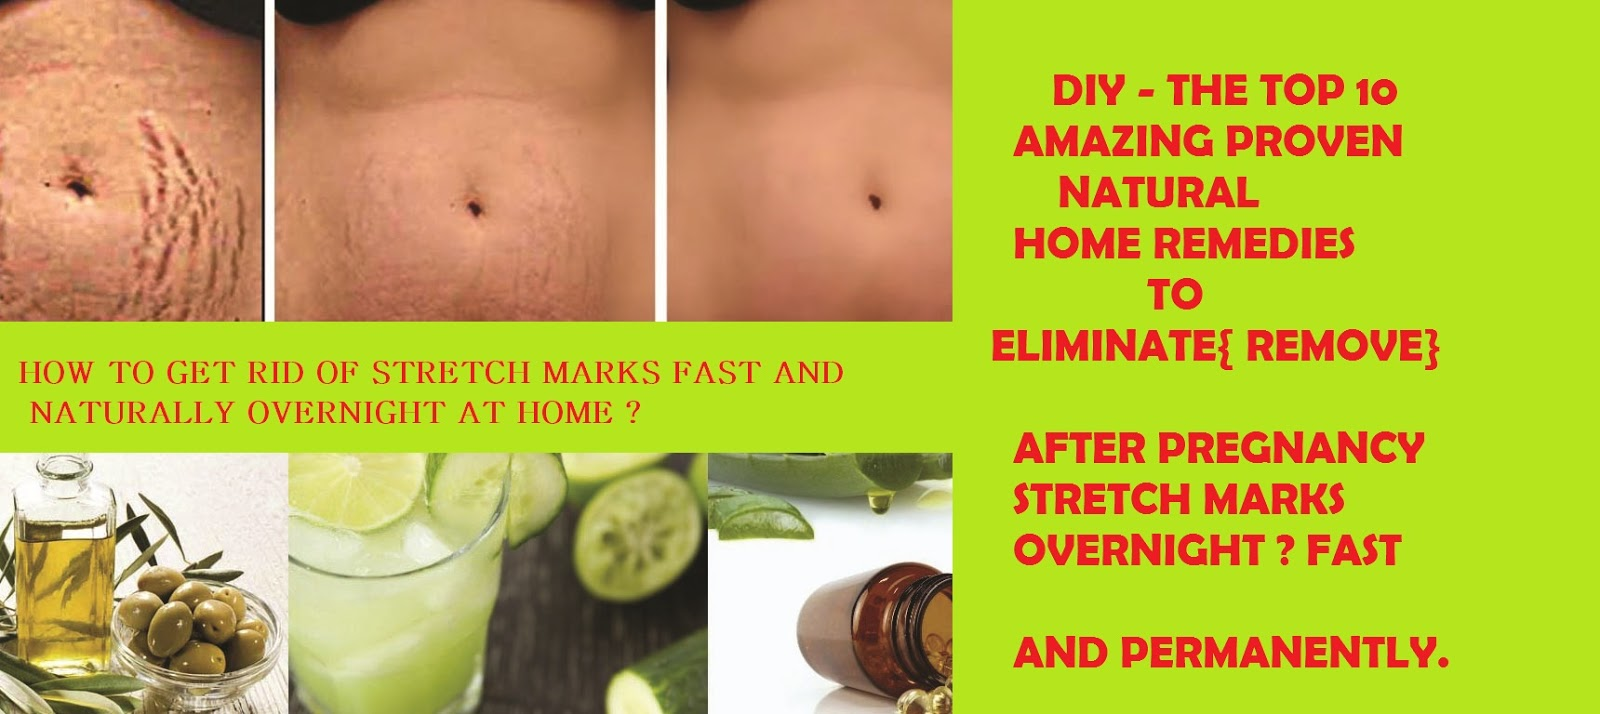 HOW TO GET RID OF STRETCH MARKS FAST AND NATURALLY OVERNIGHT AT HOME